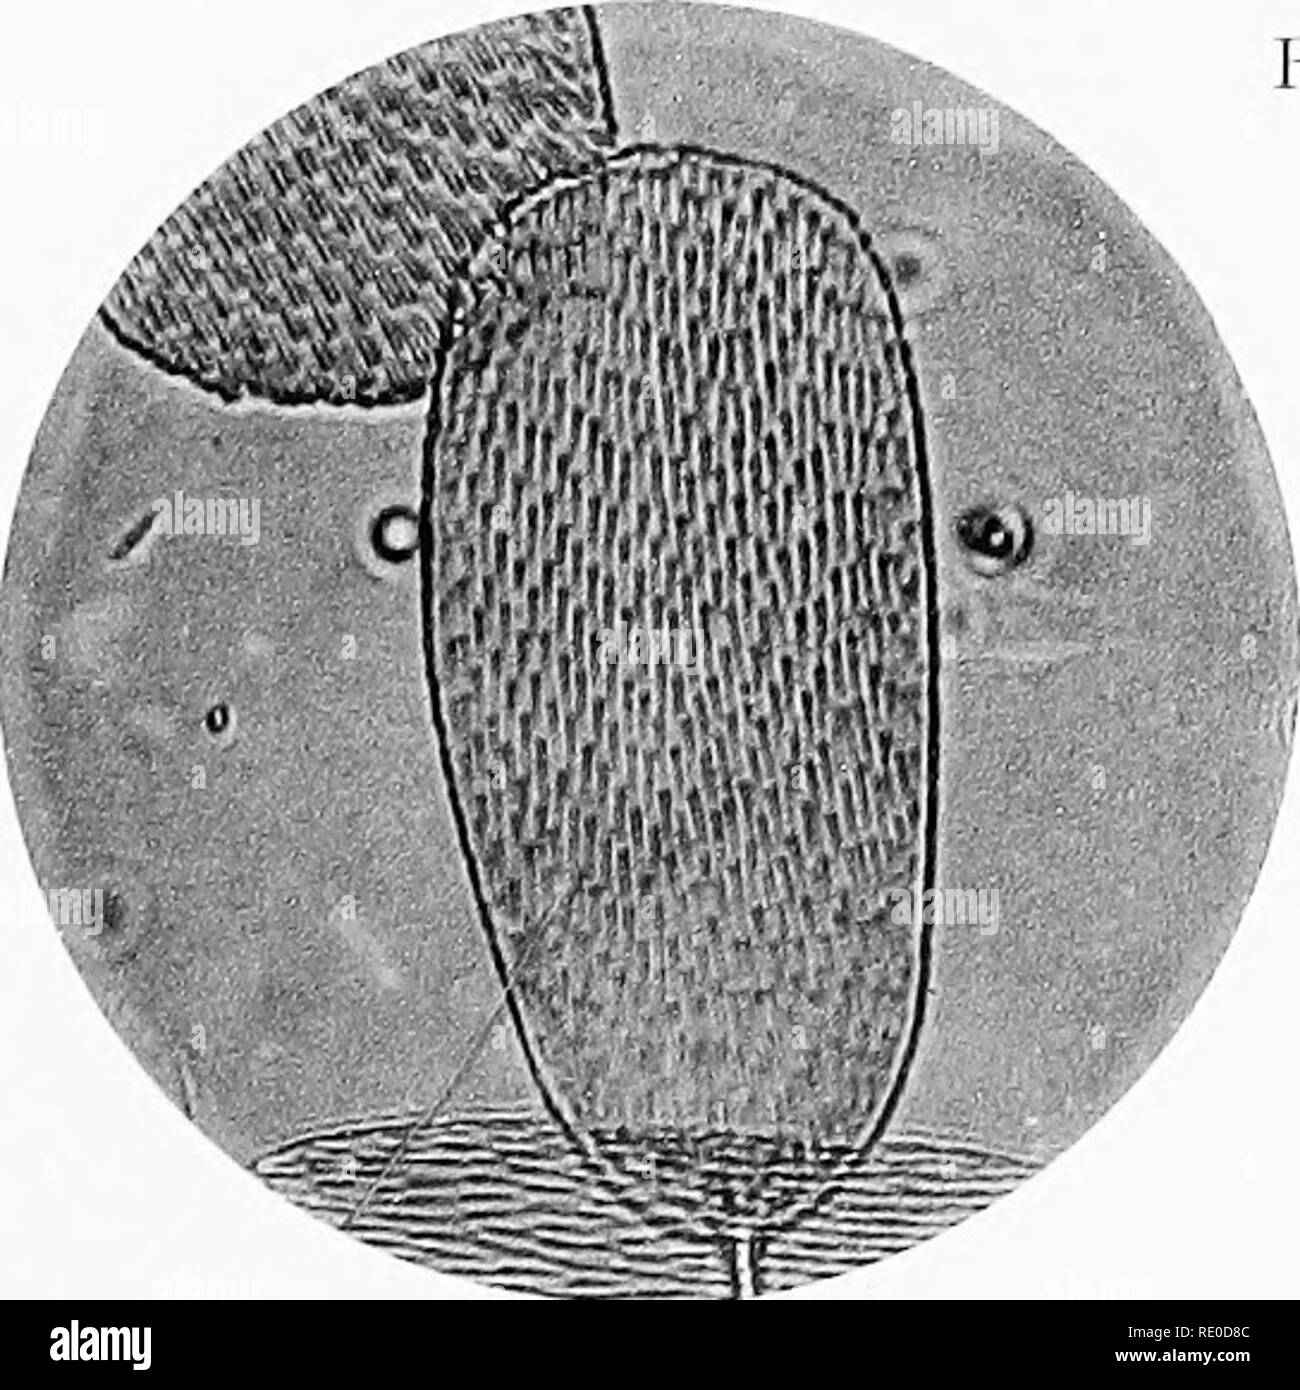 . Photo-micrographs and how to make them. Photomicrography. Fig. 3.. Please note that these images are extracted from scanned page images that may have been digitally enhanced for readability - coloration and appearance of these illustrations may not perfectly resemble the original work.. Sternberg, George Miller, 1838-1915. Boston, J. R. Osgood and company - Stock Image